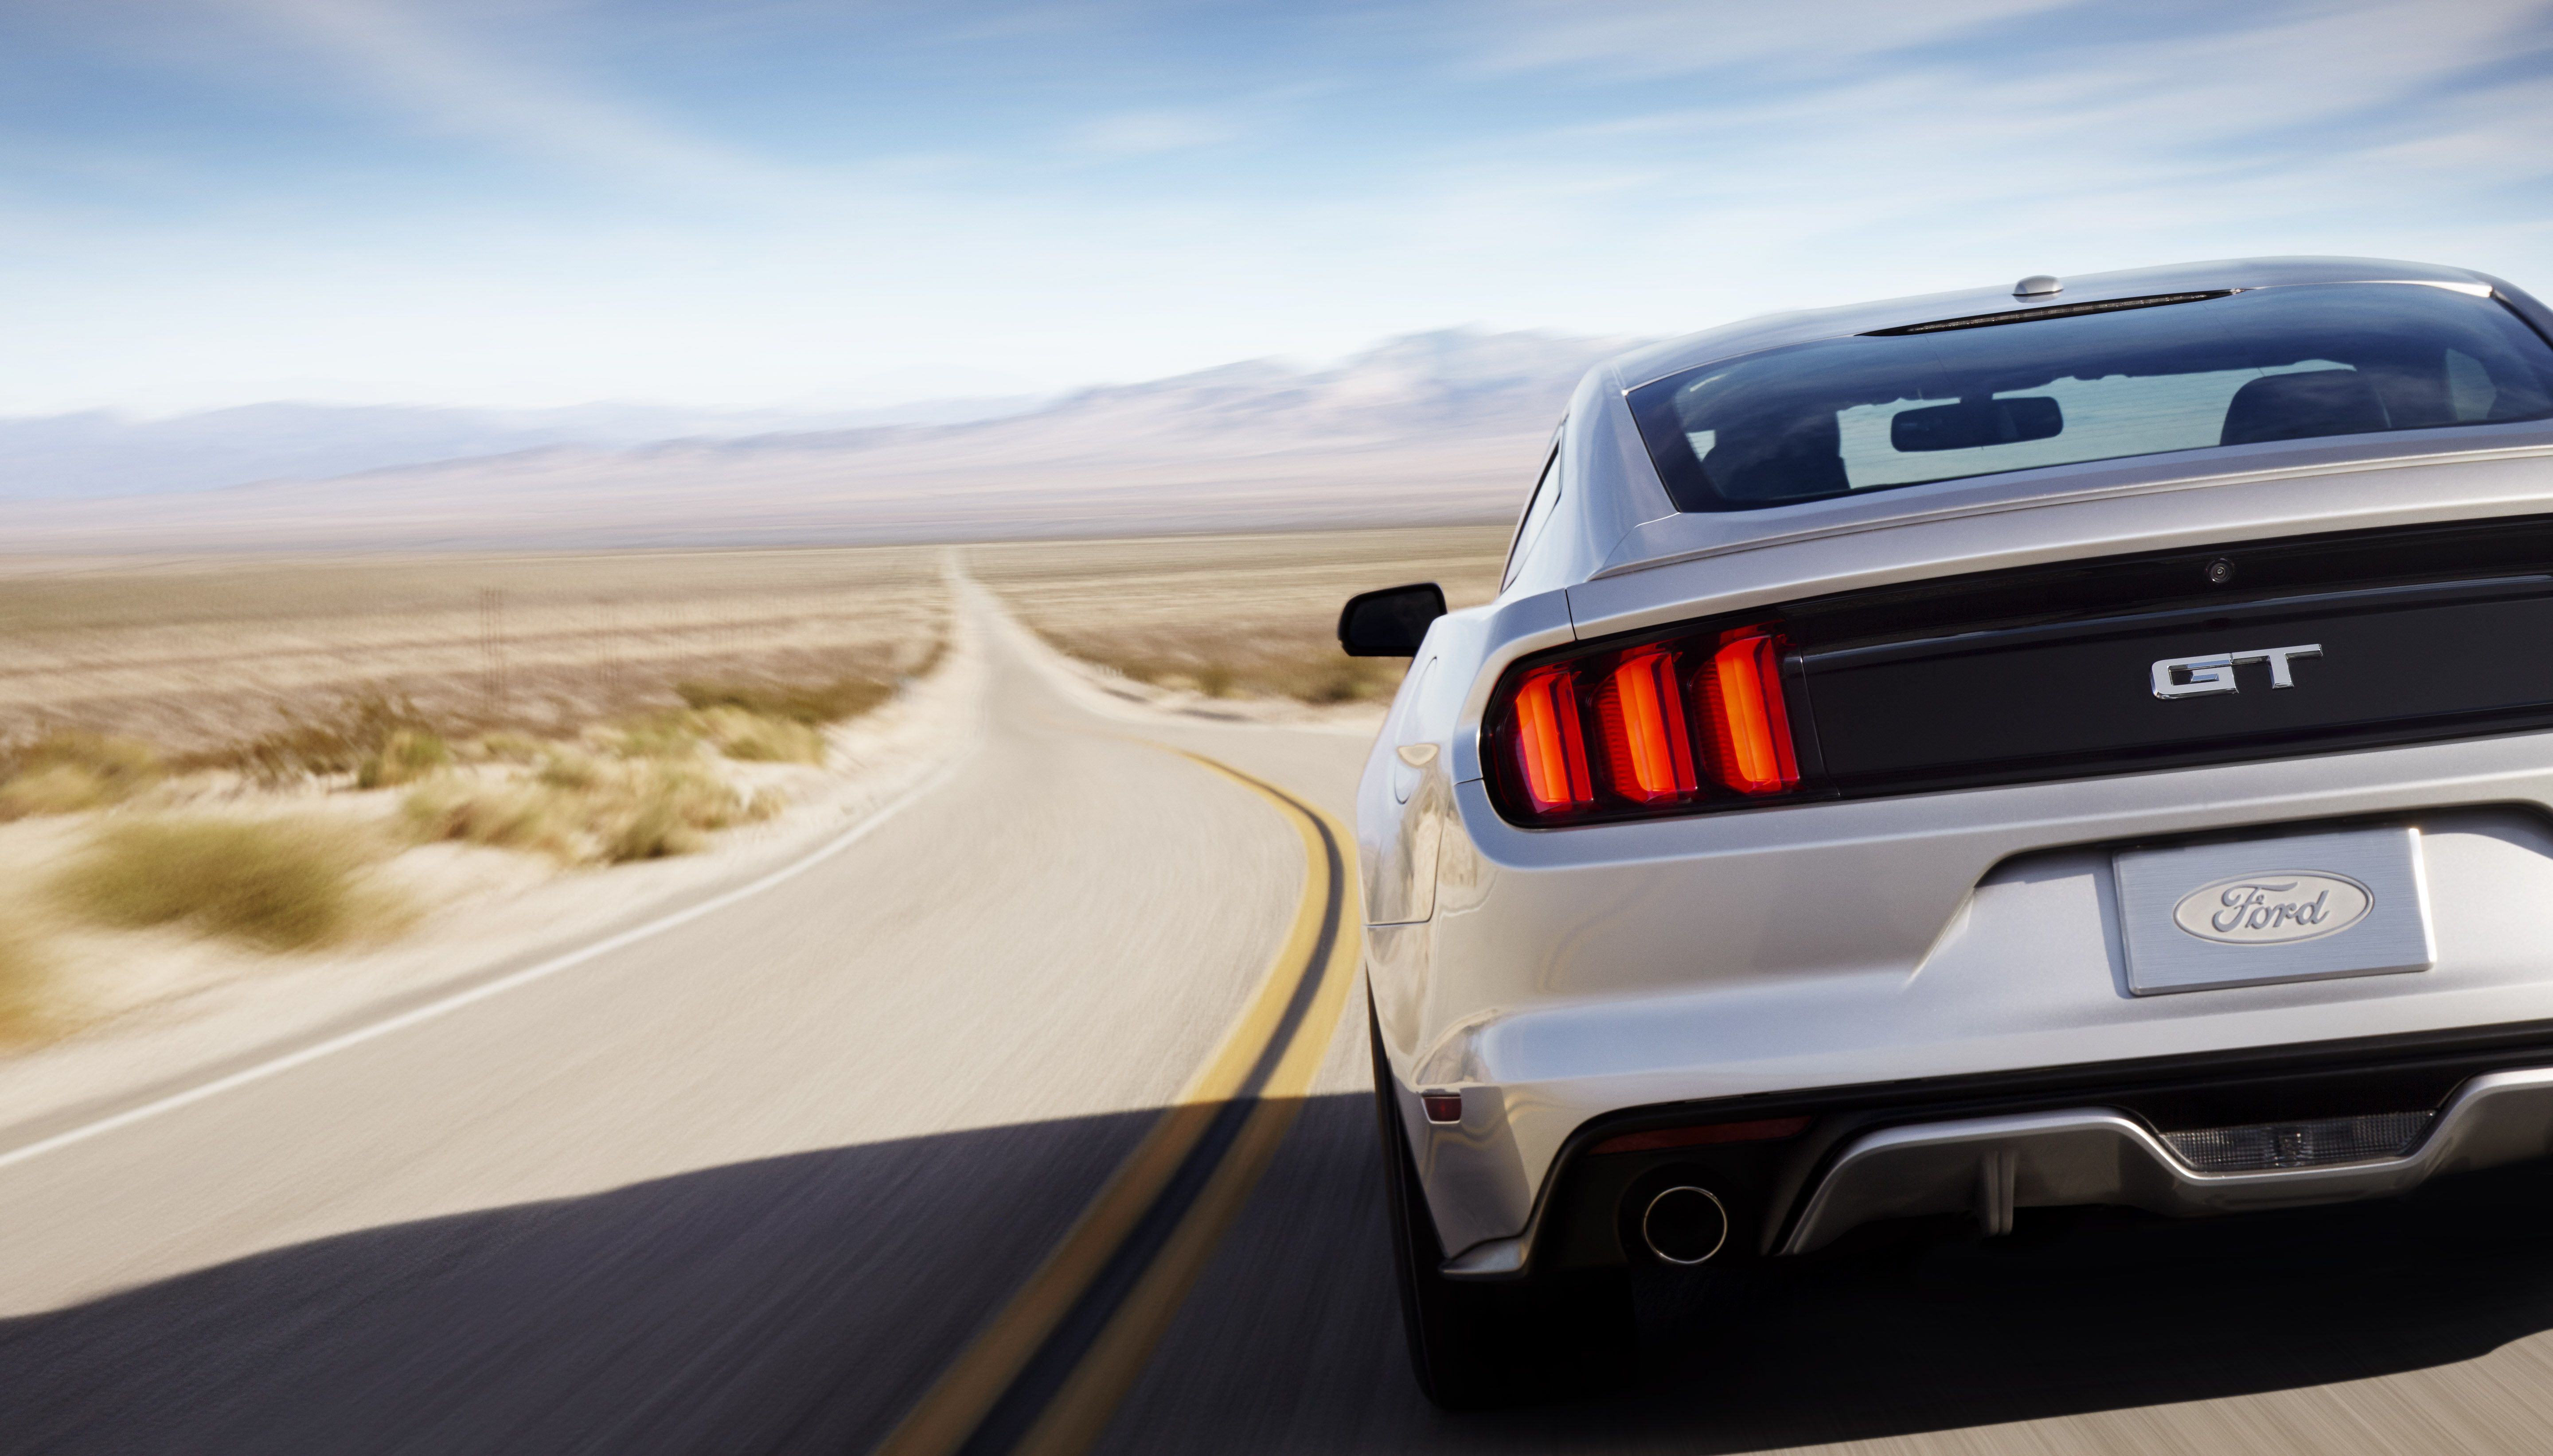 63 Best Free Mustang Hd Wallpapers Wallpaperaccess